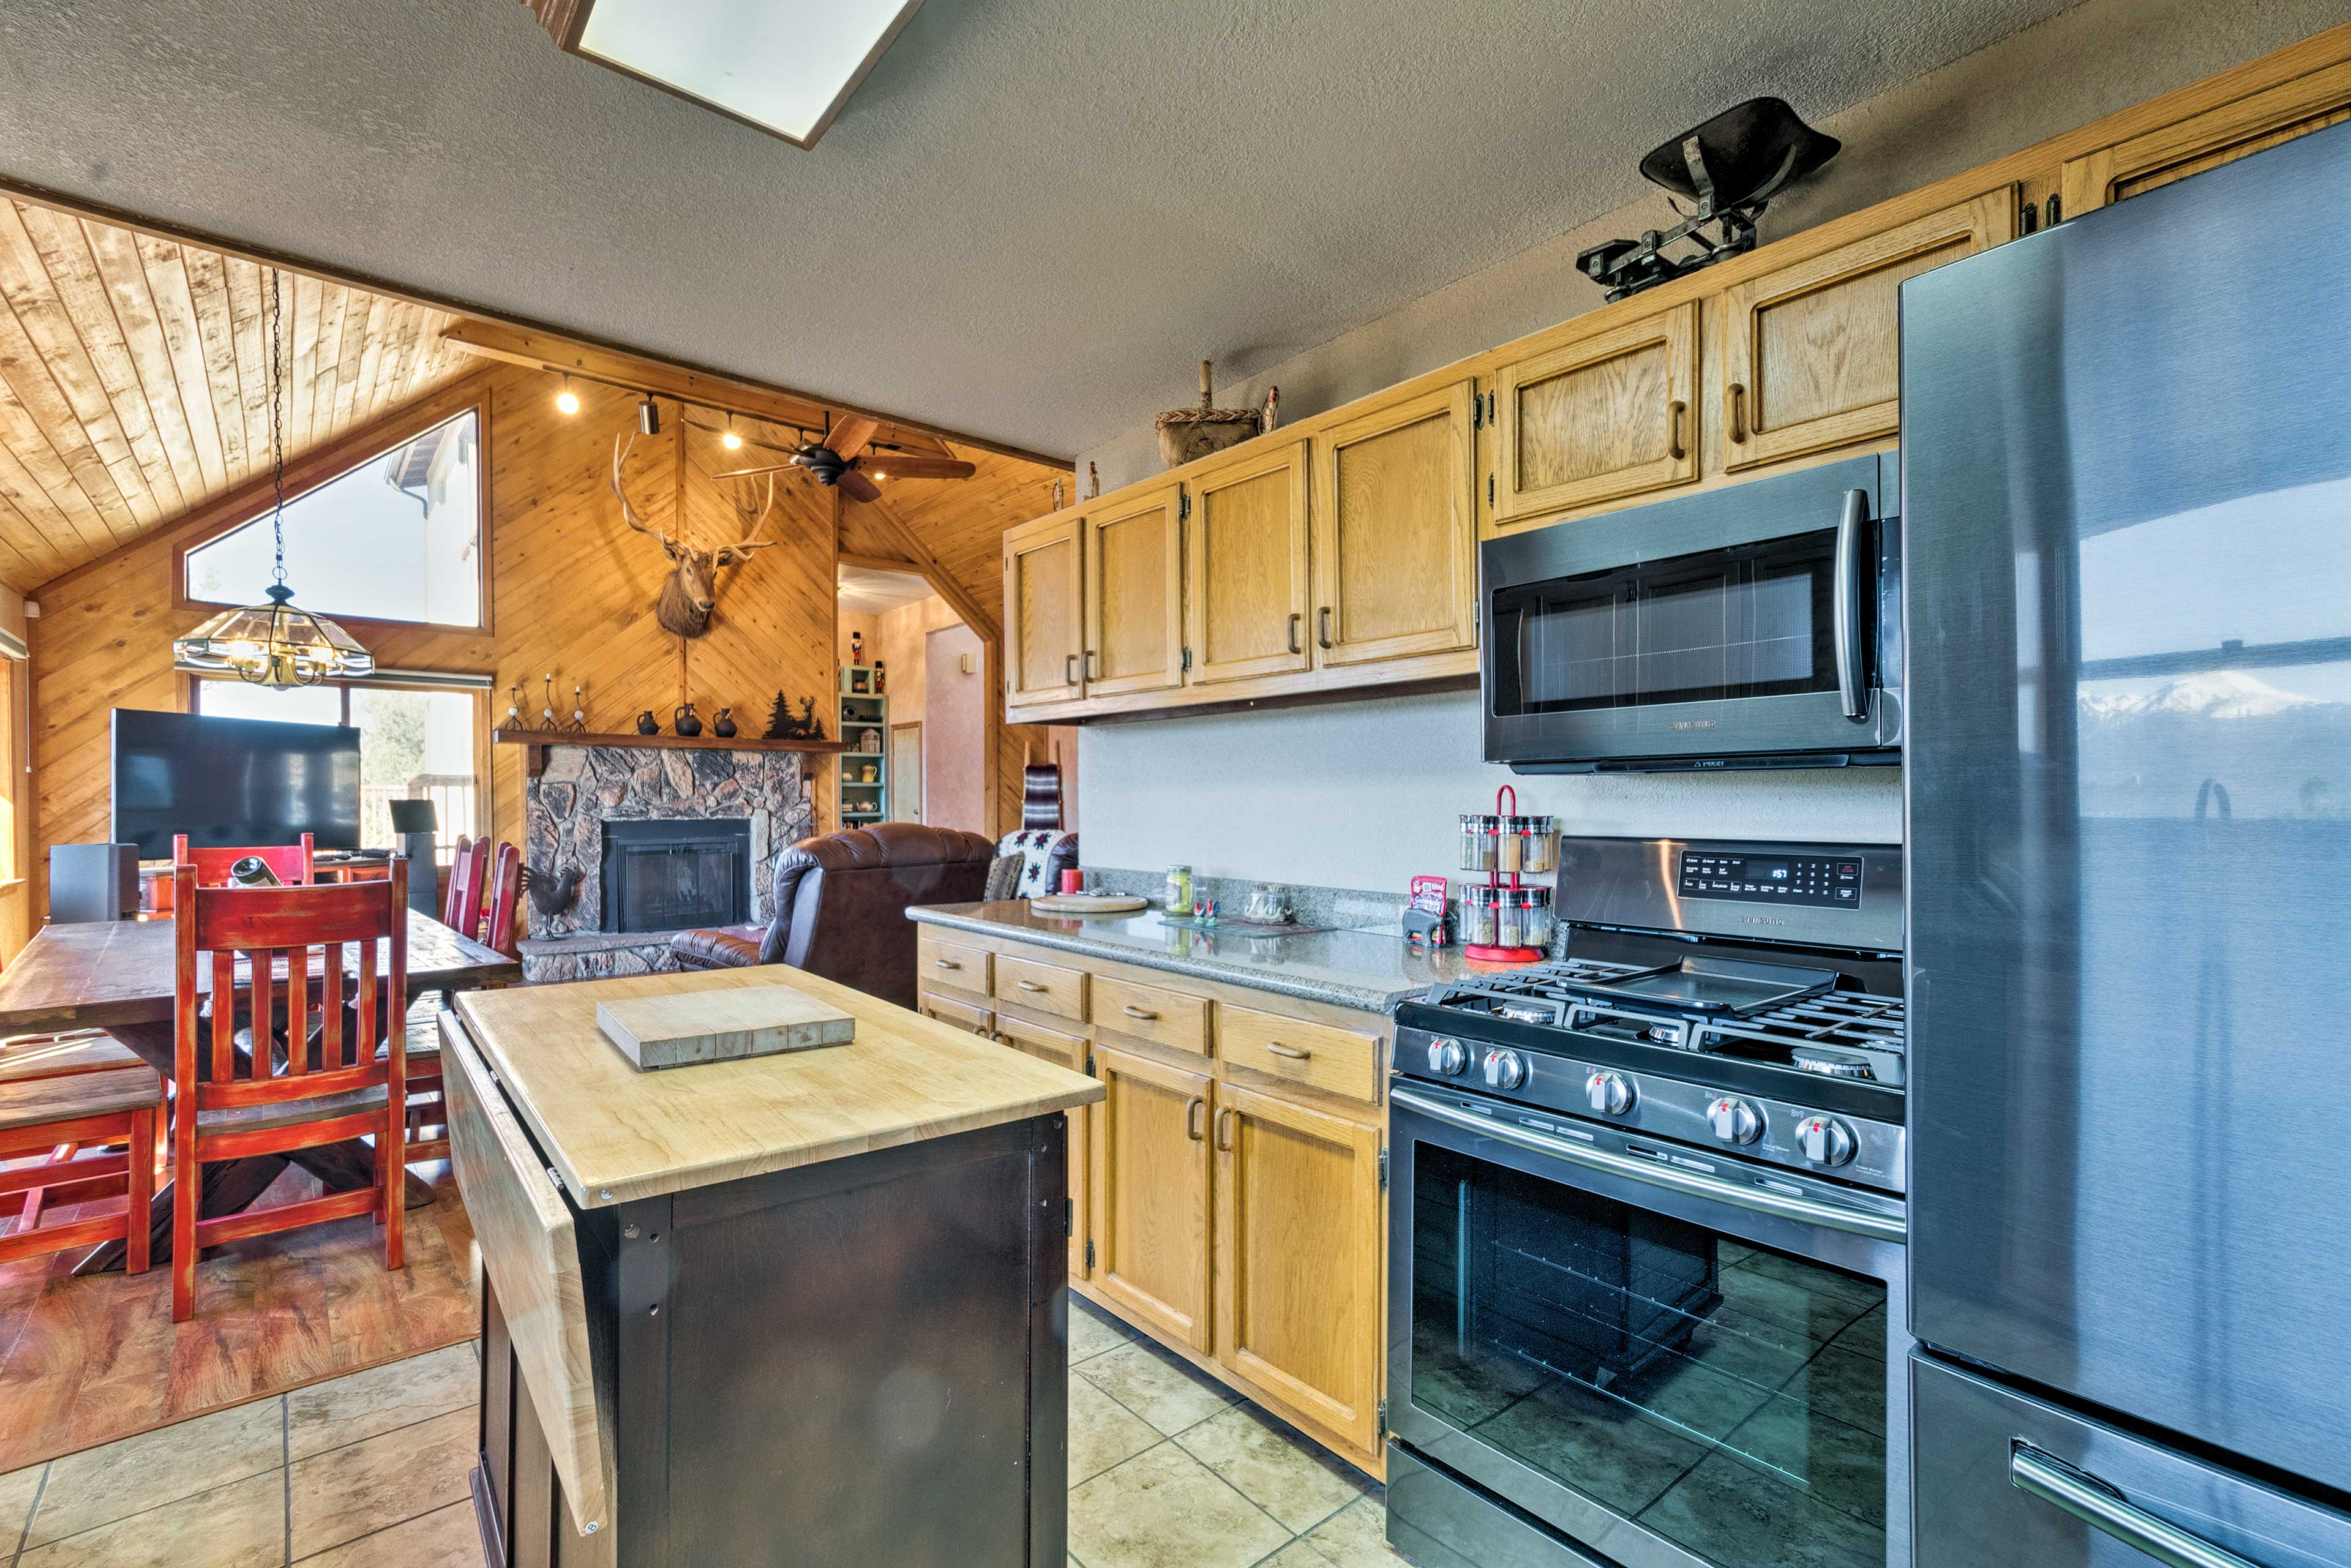 Refuel with hearty home-cooked meals prepared in the spacious kitchen.